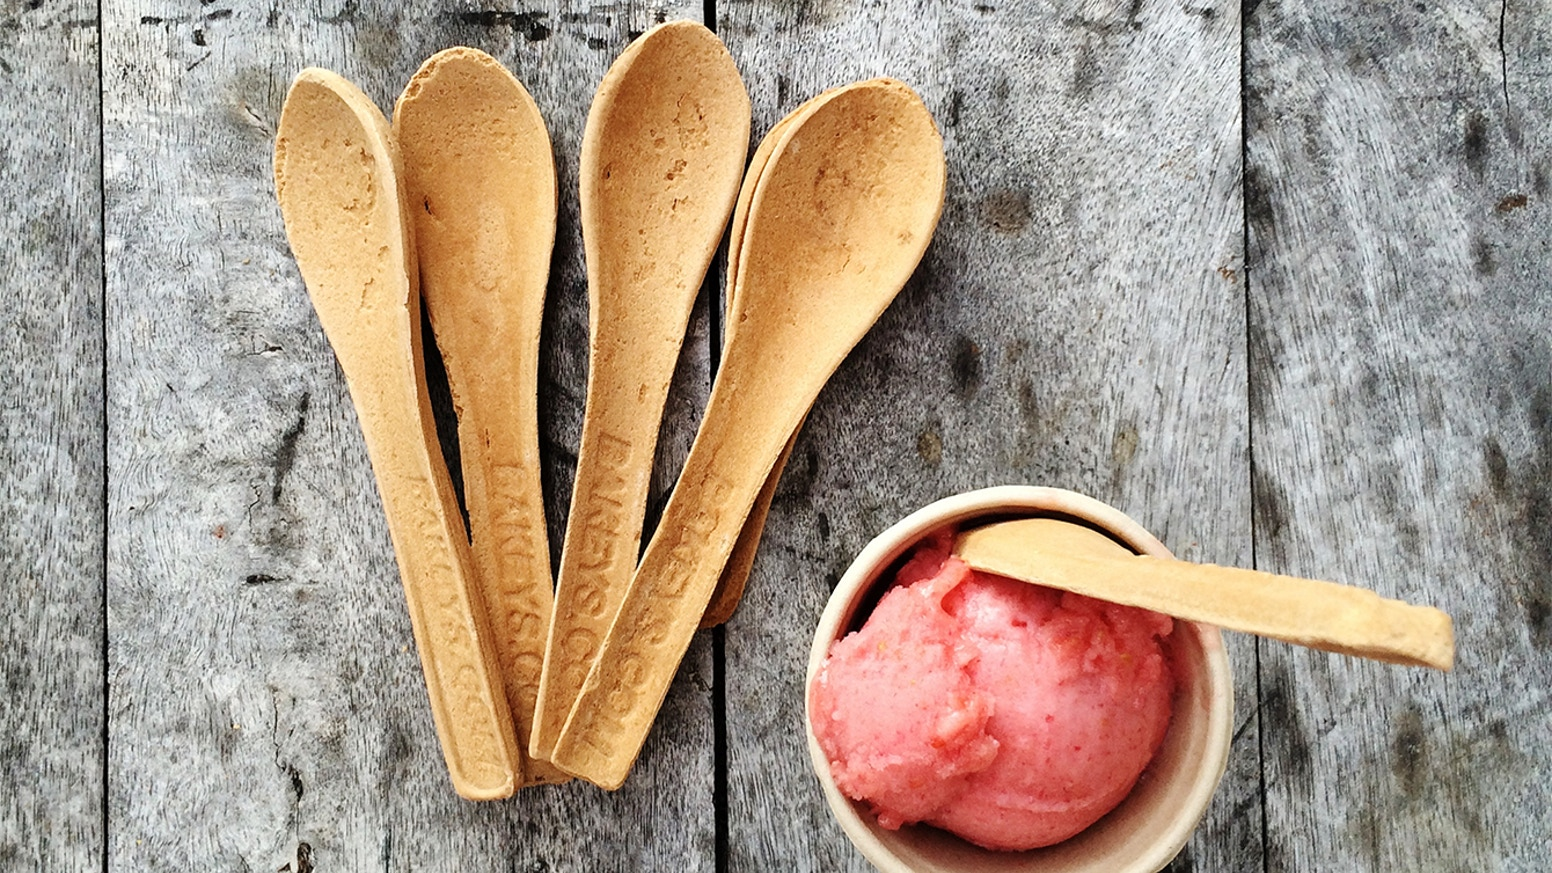 Edible Cutlery: The Future of Eco Friendly Utensils by Sarah Munir